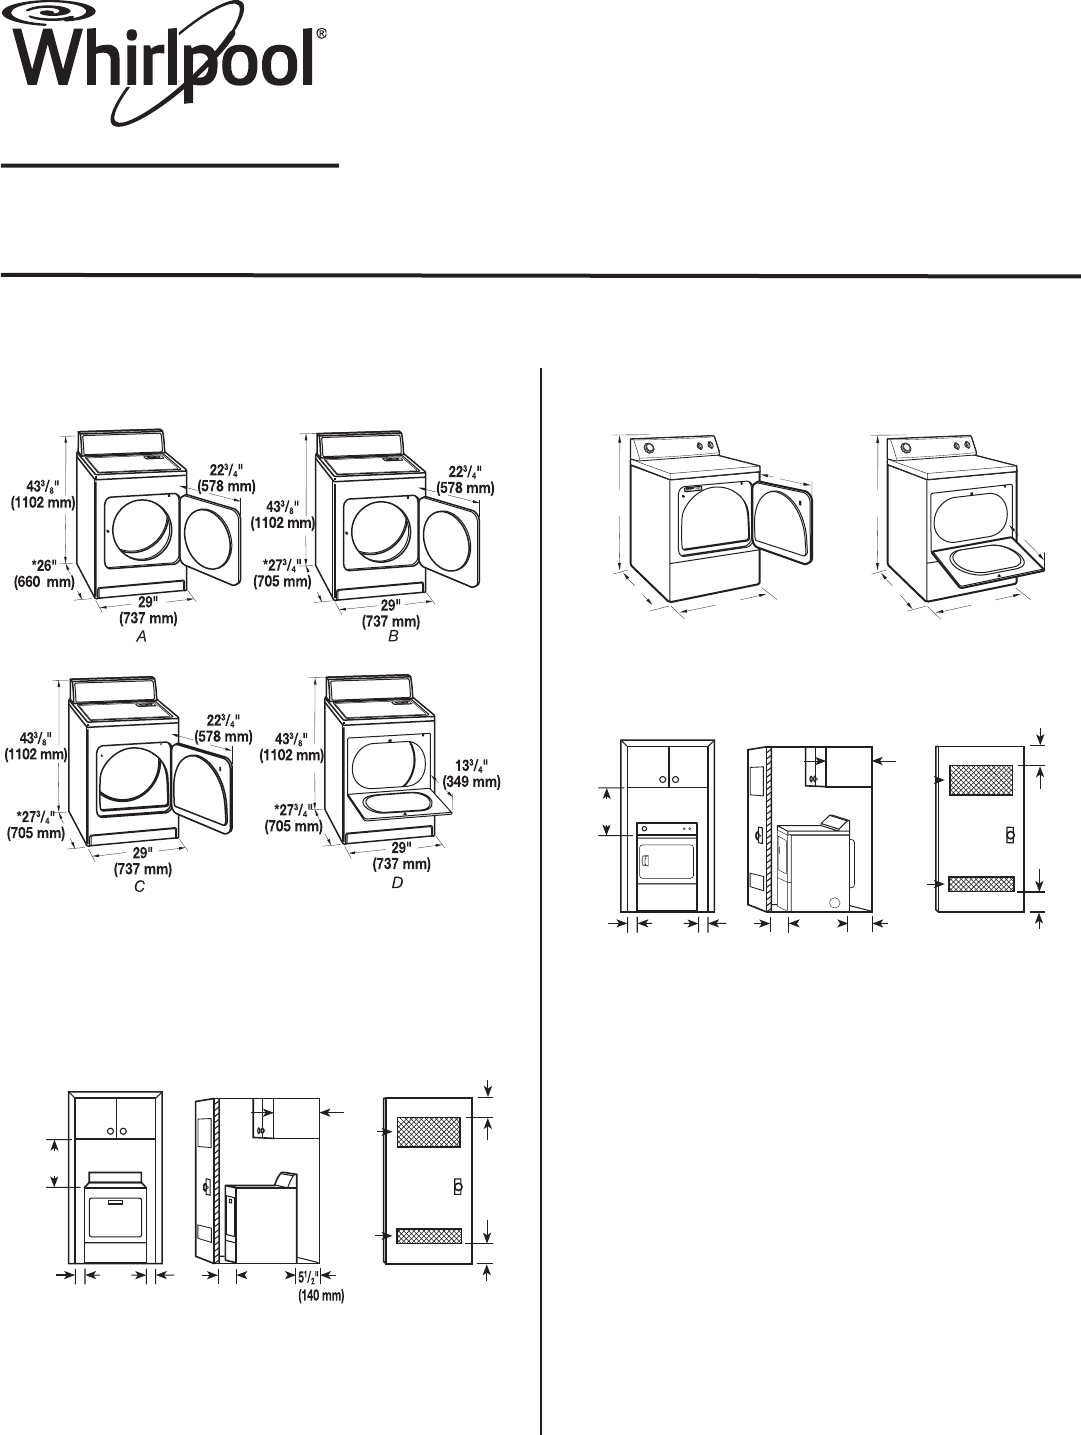 whirlpool washer and dryer manual